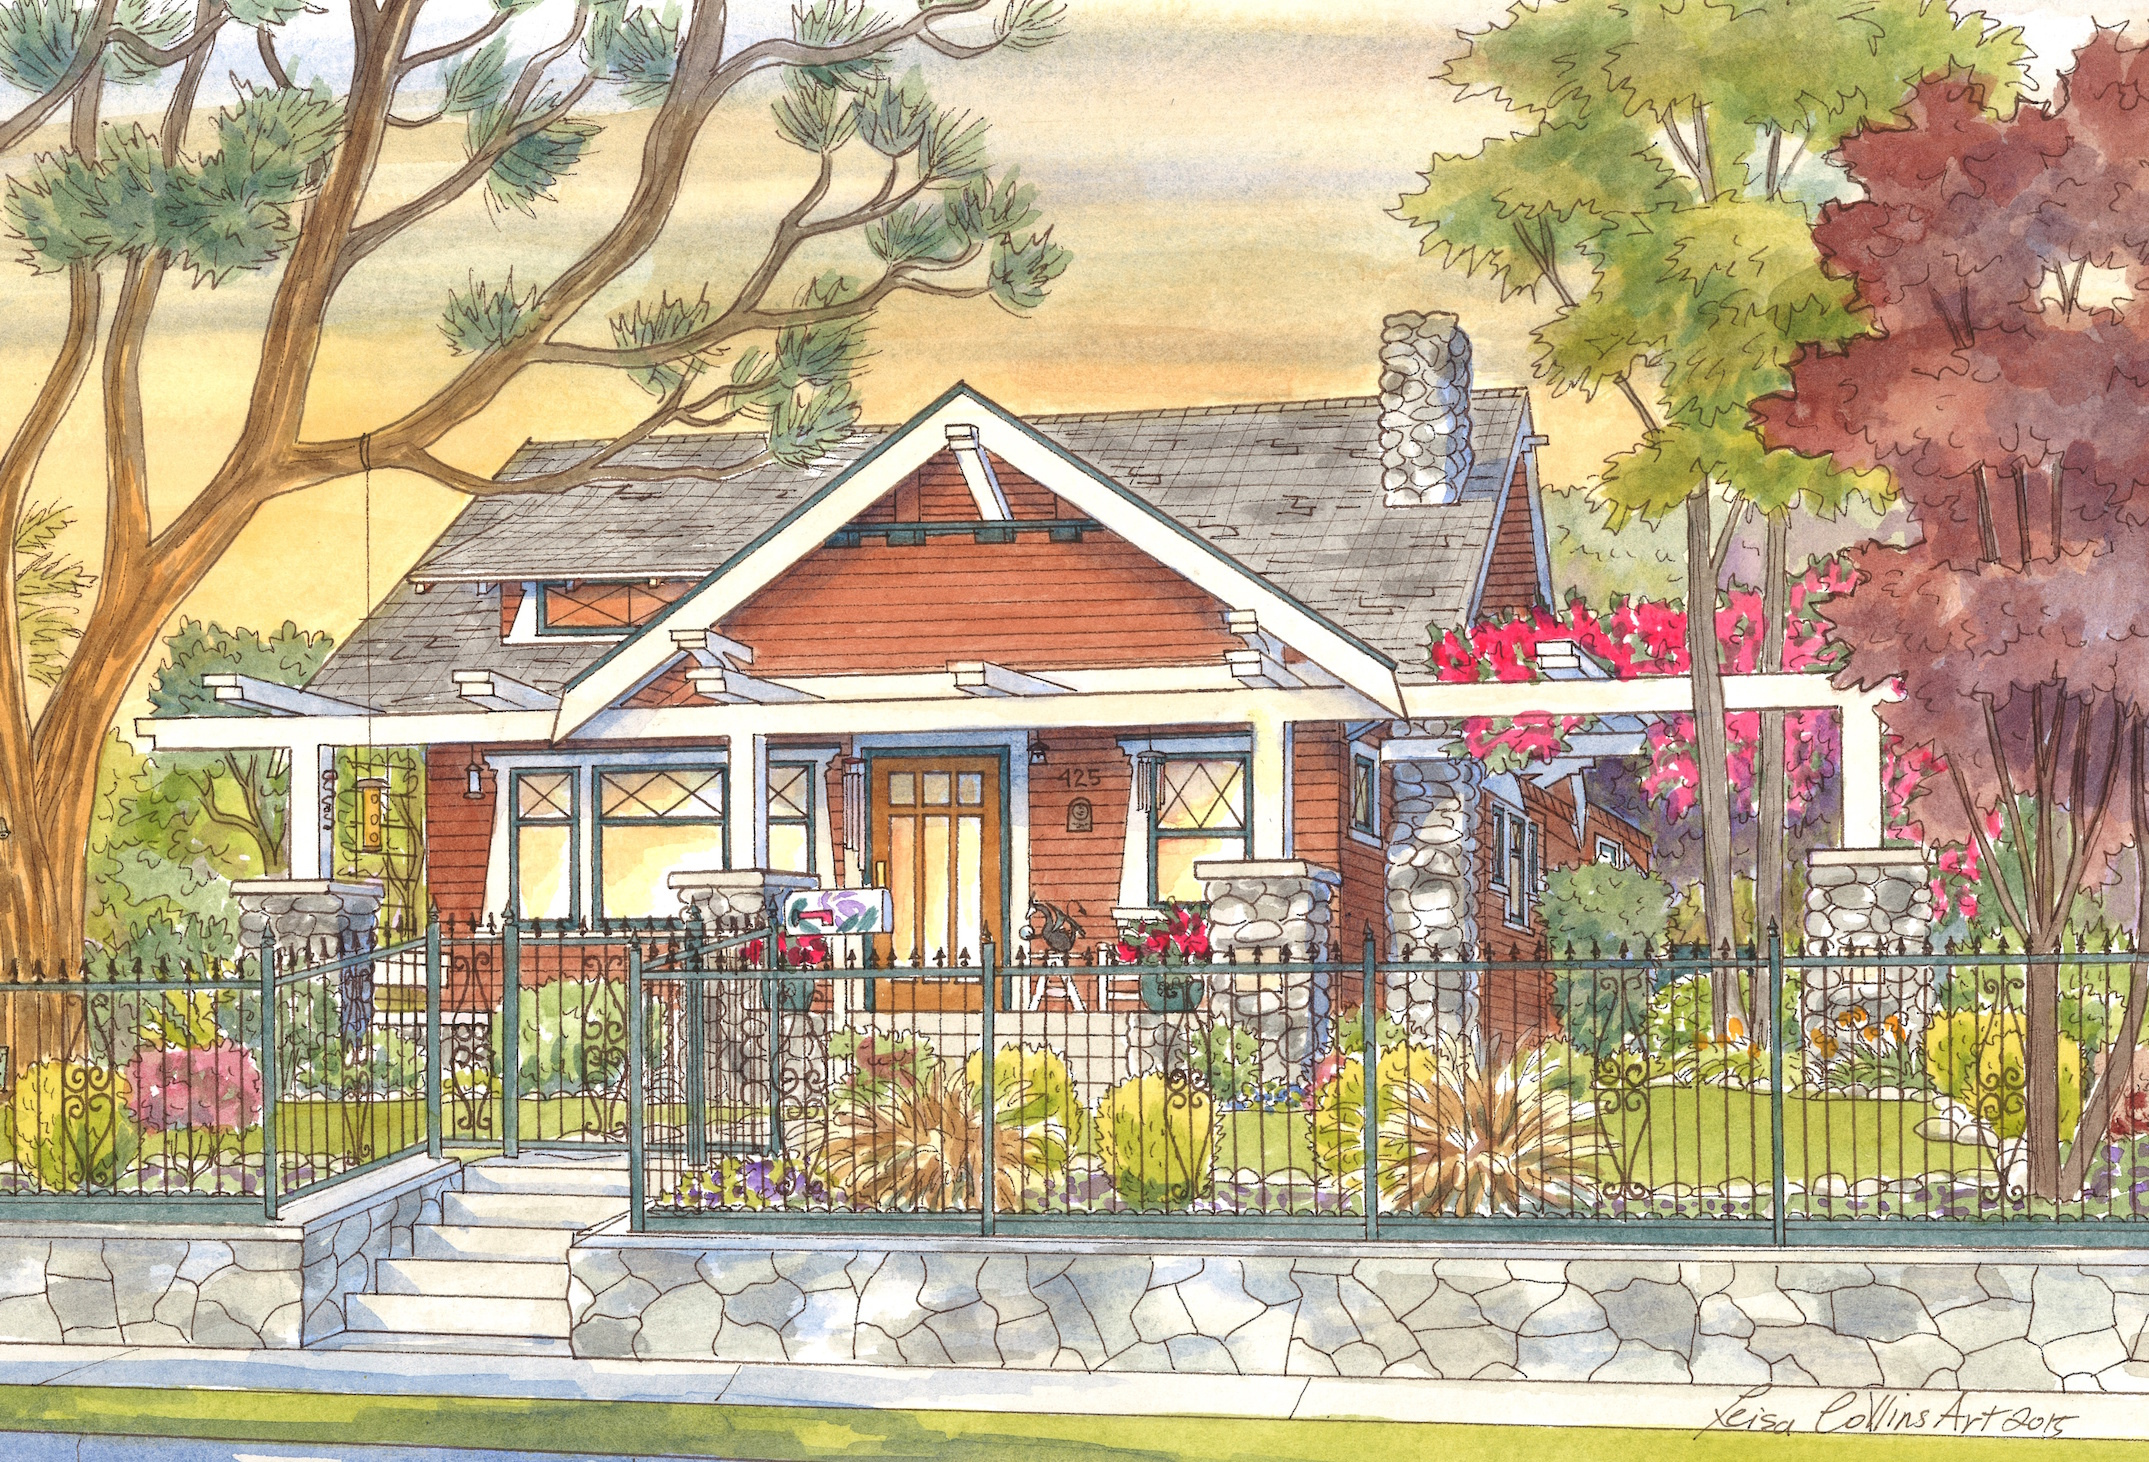 House Paintings leisa collins art - architectural, cityscape, house paintings and